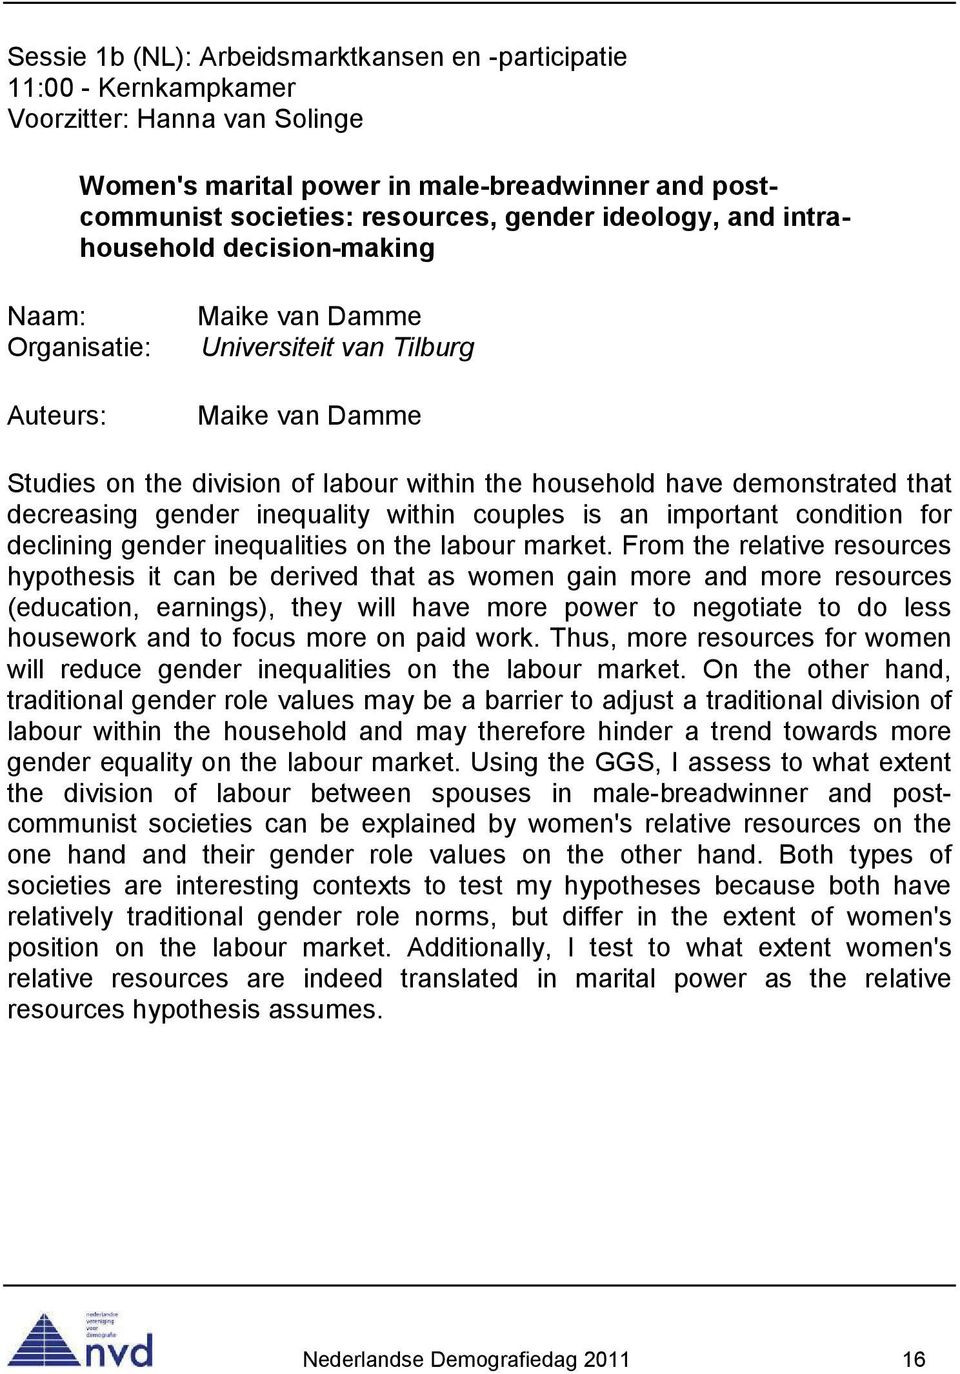 inequality within couples is an important condition for declining gender inequalities on the labour market.